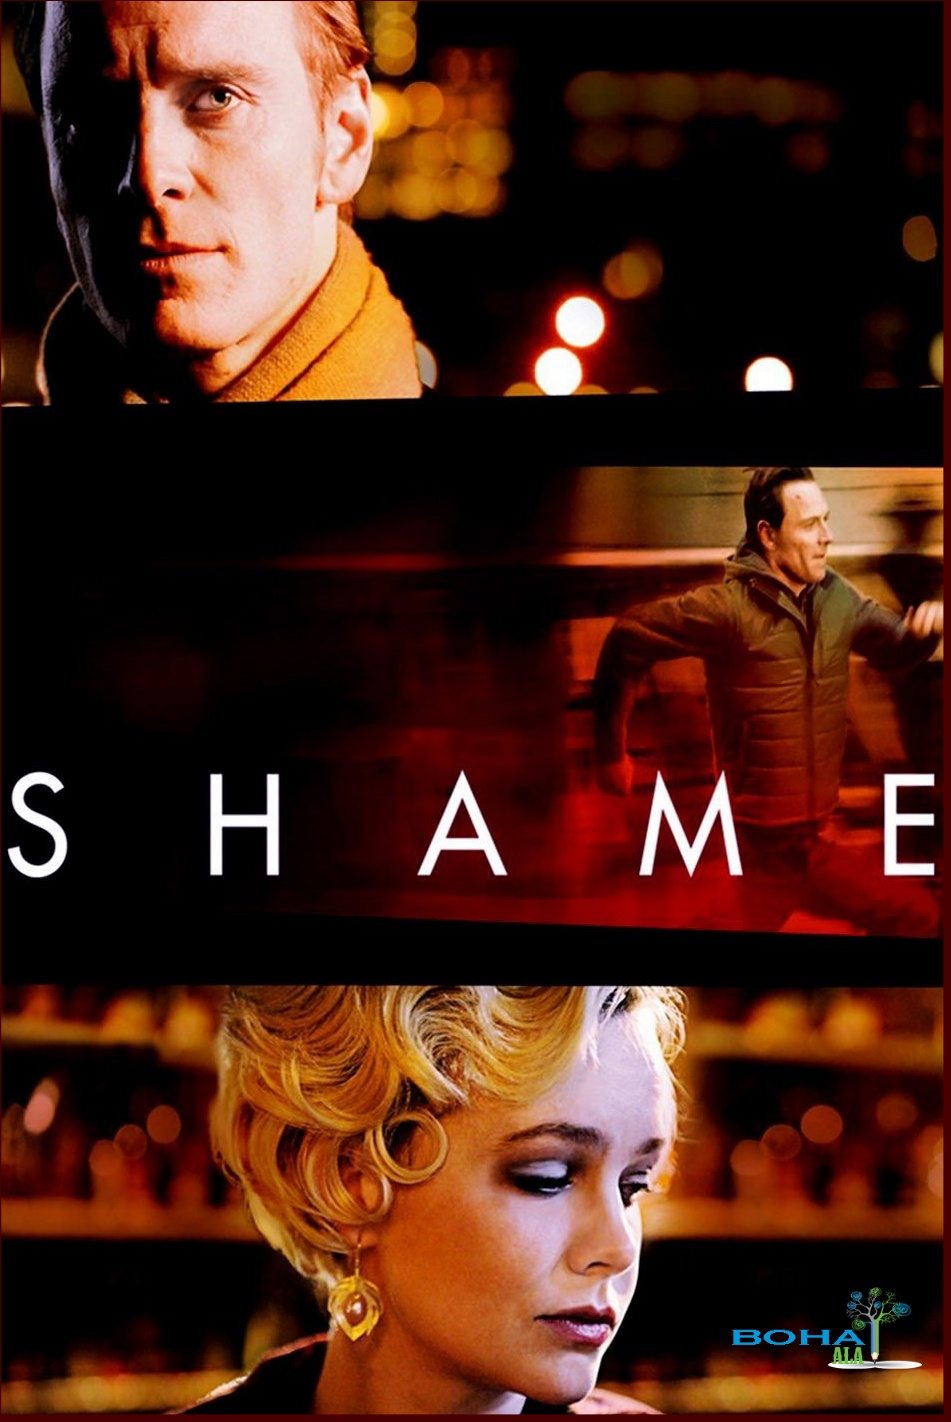 Shame Movie Summary Analysis